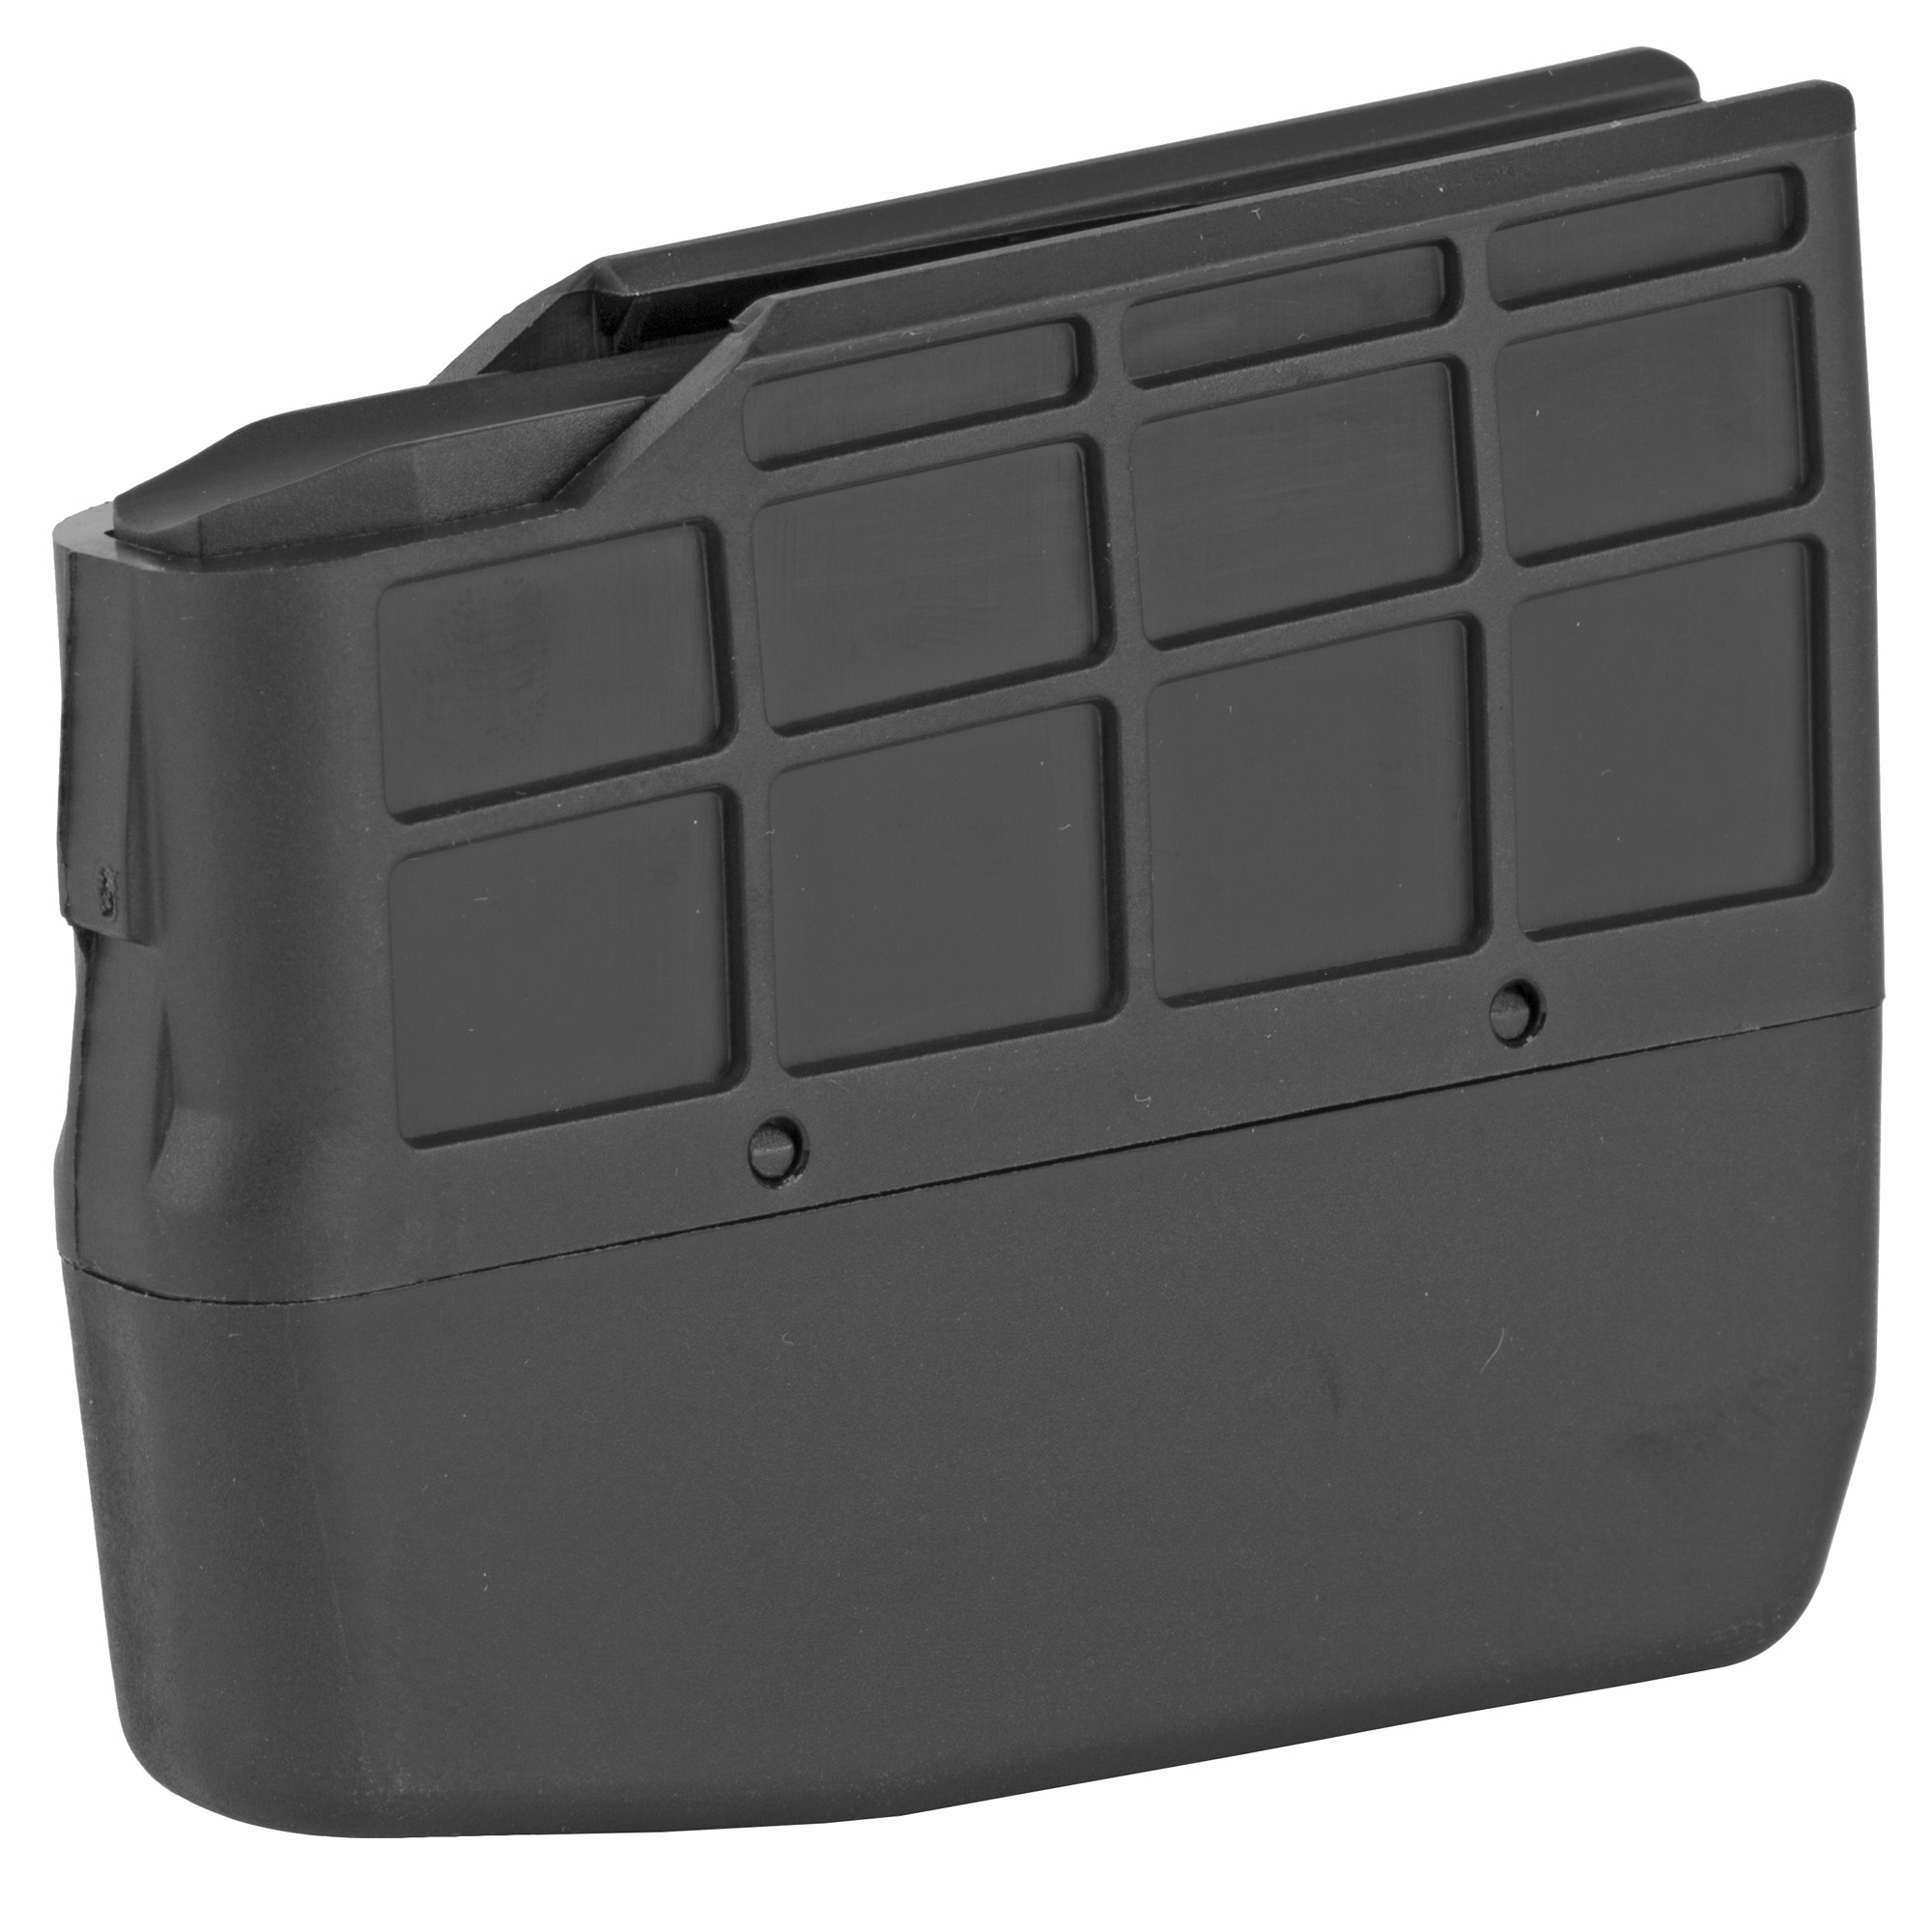 "Tikka T3 extra Magazines are handy to have in your pocket when hunting or target practicing"" as an empty magazine can be replaced quickly and easily by a full one. Simply slip in a full mag and you are immediately ready to chamber another round."